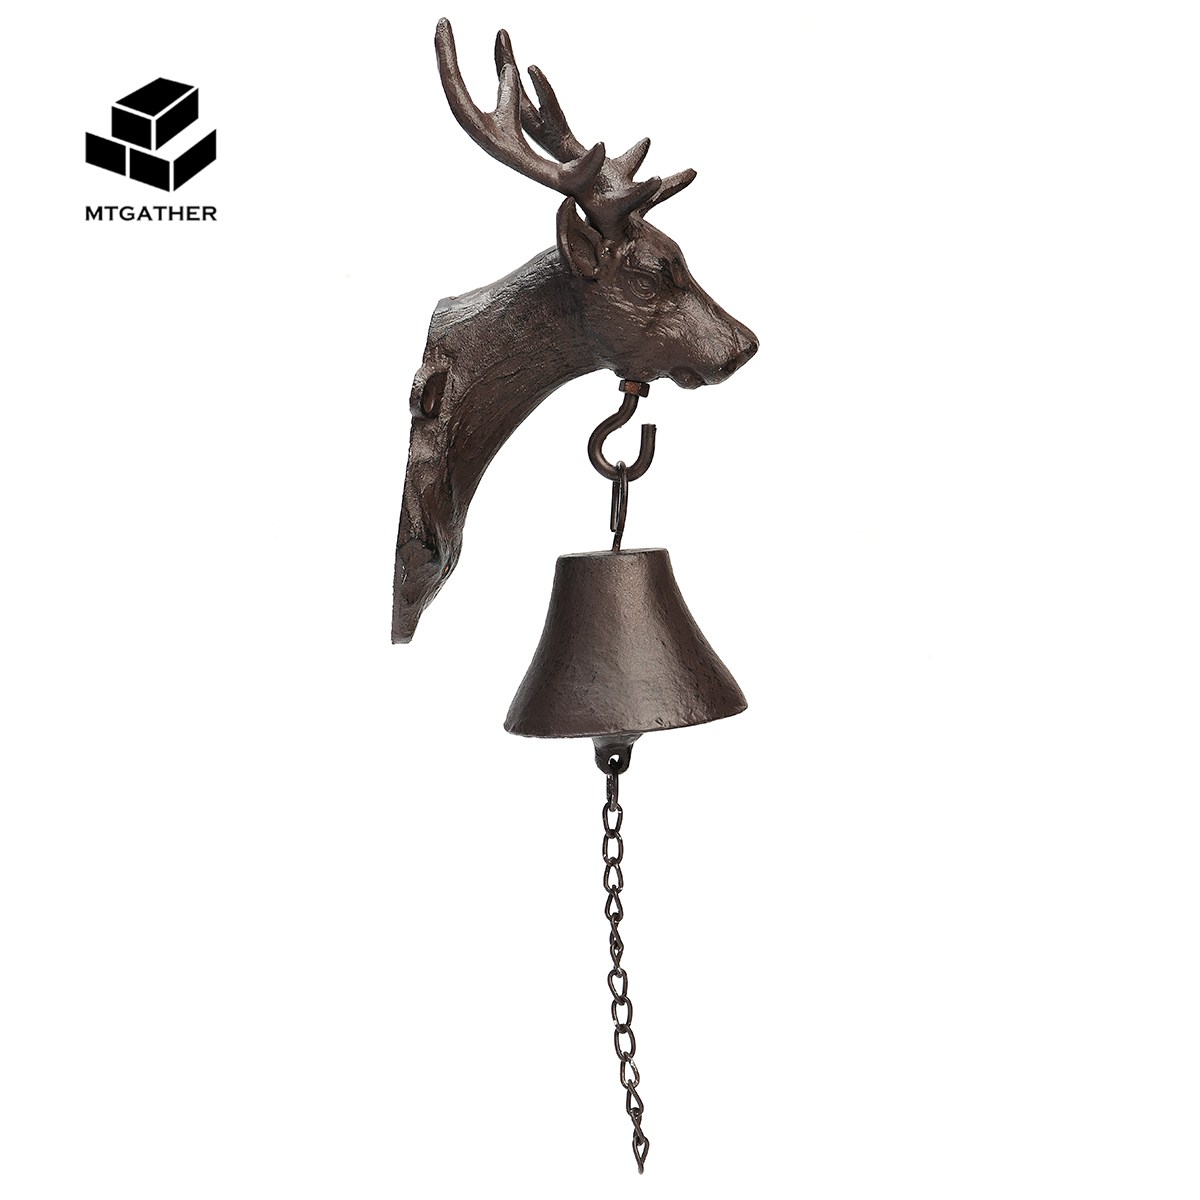 MTGATHER Vintage Cast Iron Door Bell Metal Wall Mounted Stag Head Deer Antler Reindeer Design for Home Garden Decoration